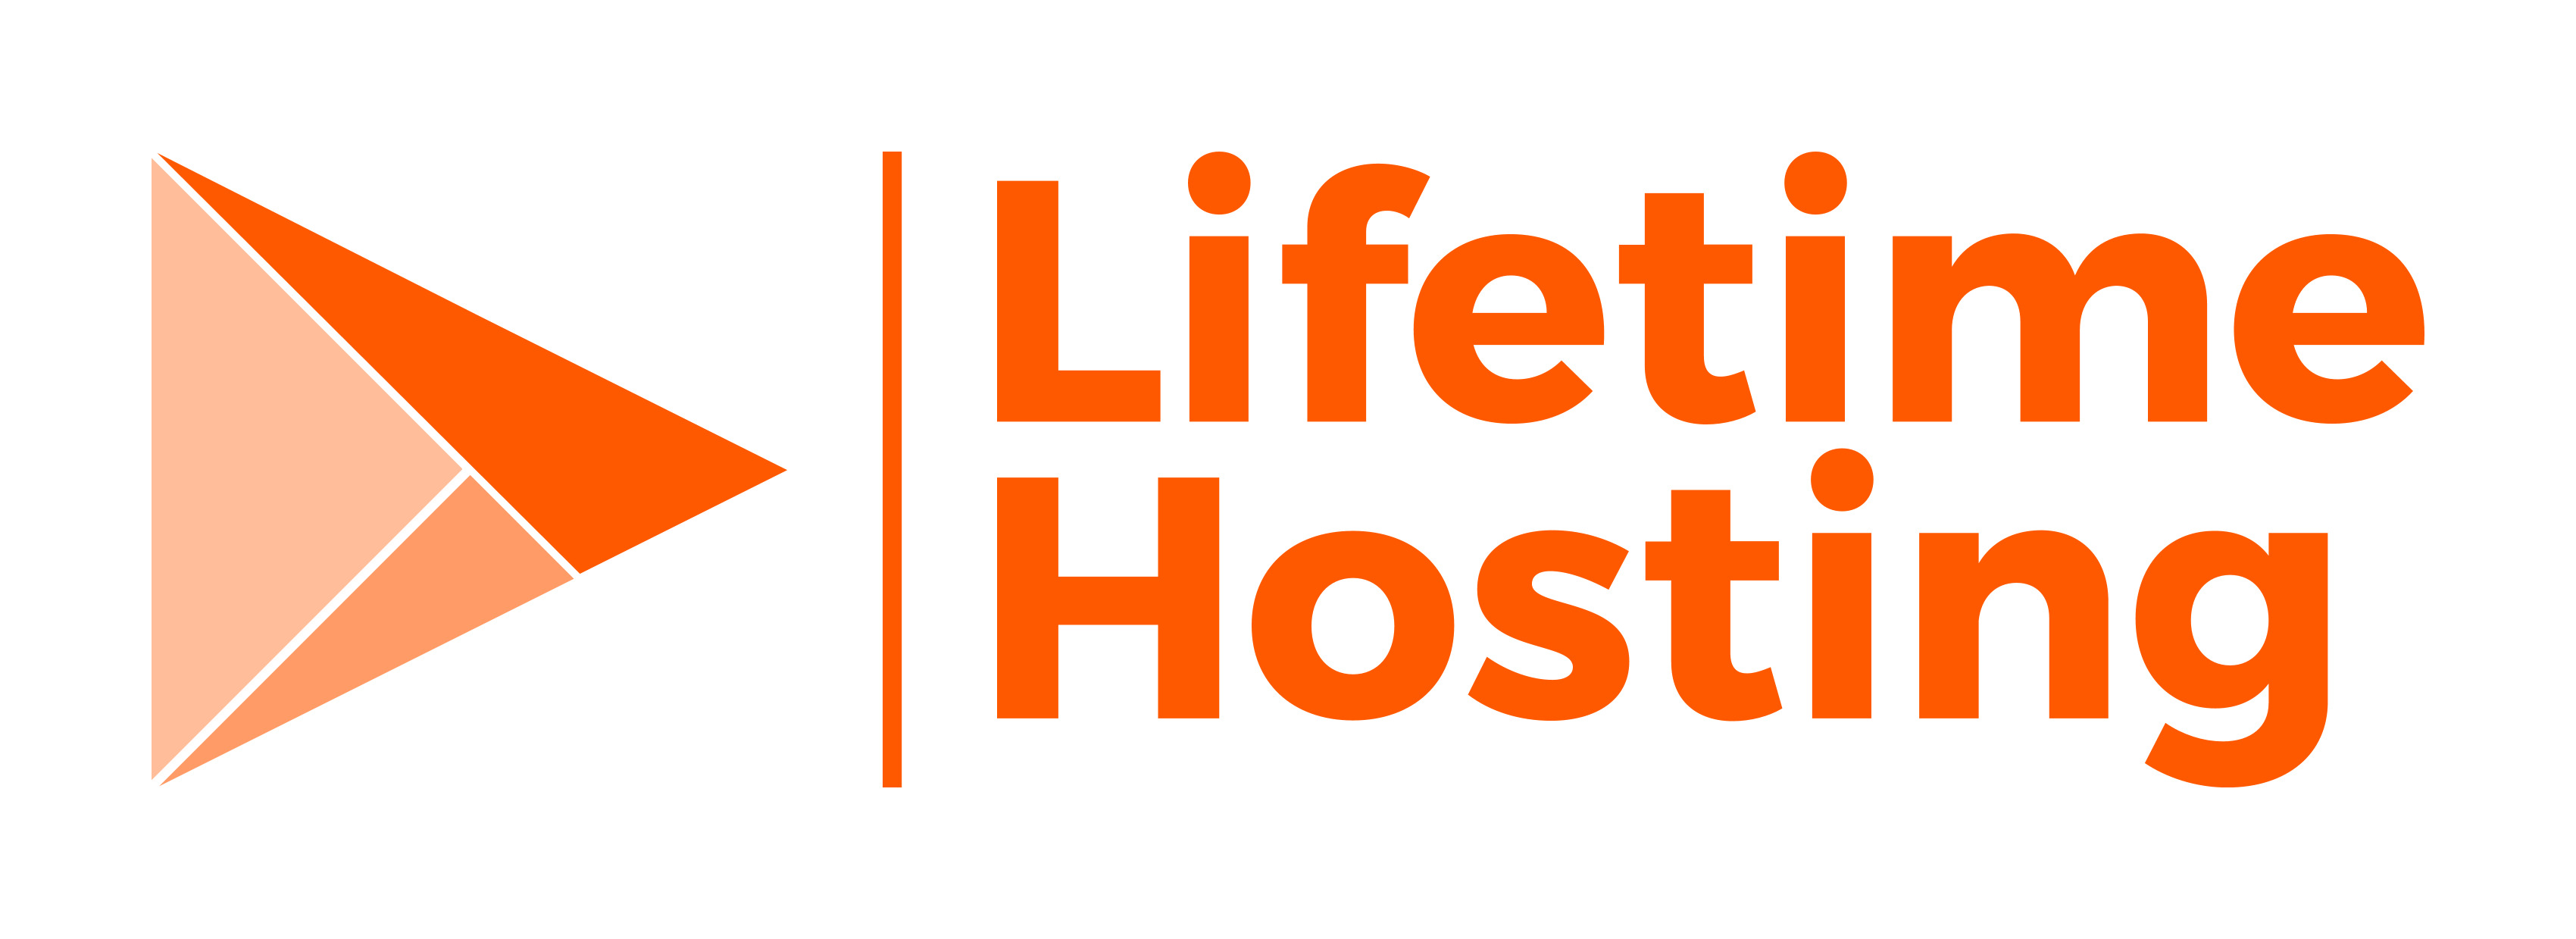 LifeTimeHosting